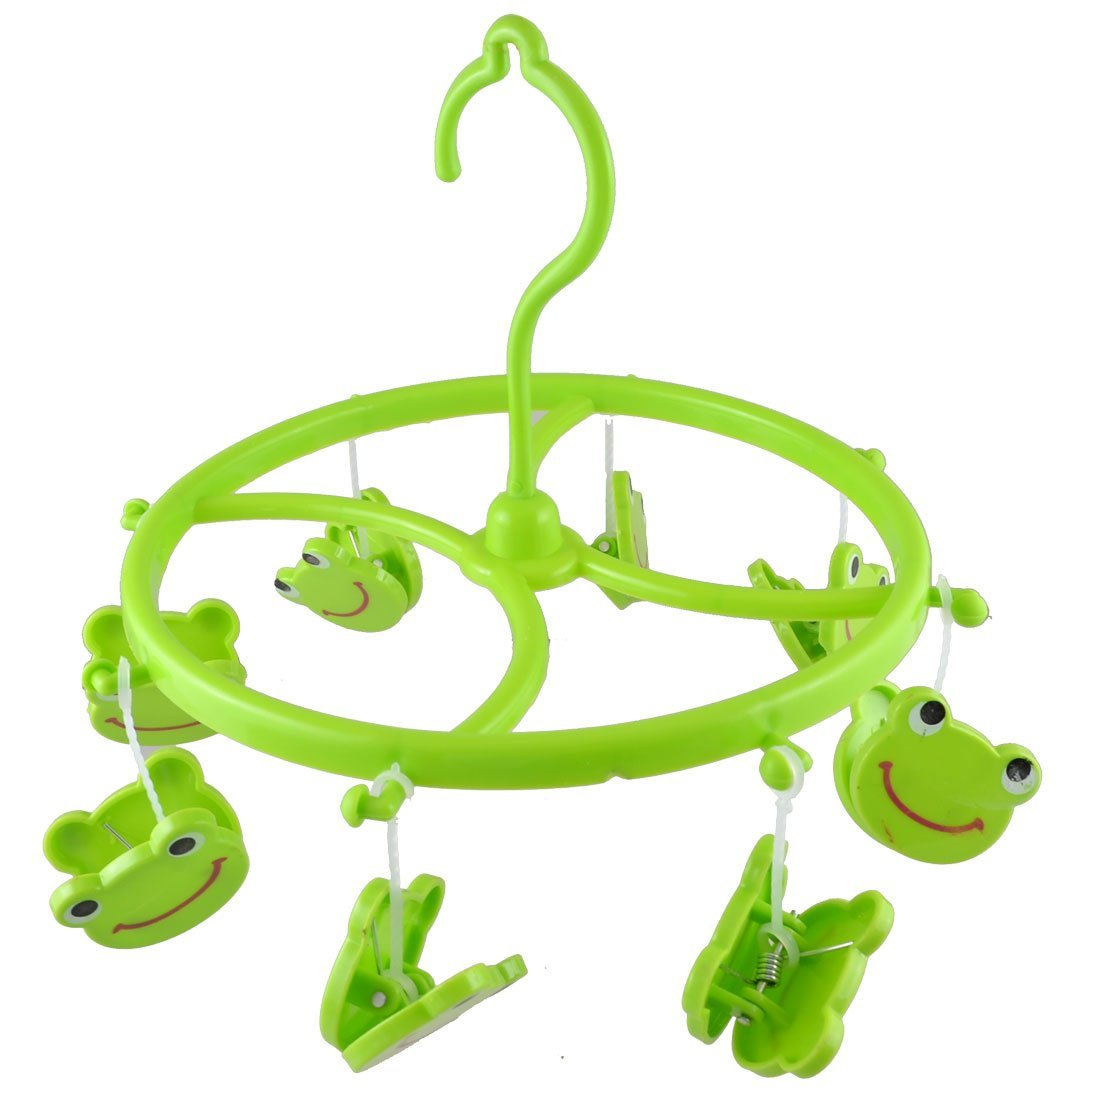 SODIAL(R) Green Plastic 8 Smile Frog Clips Round Shell Scarf Towel Gloves Hanging Clothes Peg AEQW-WER-AW141796